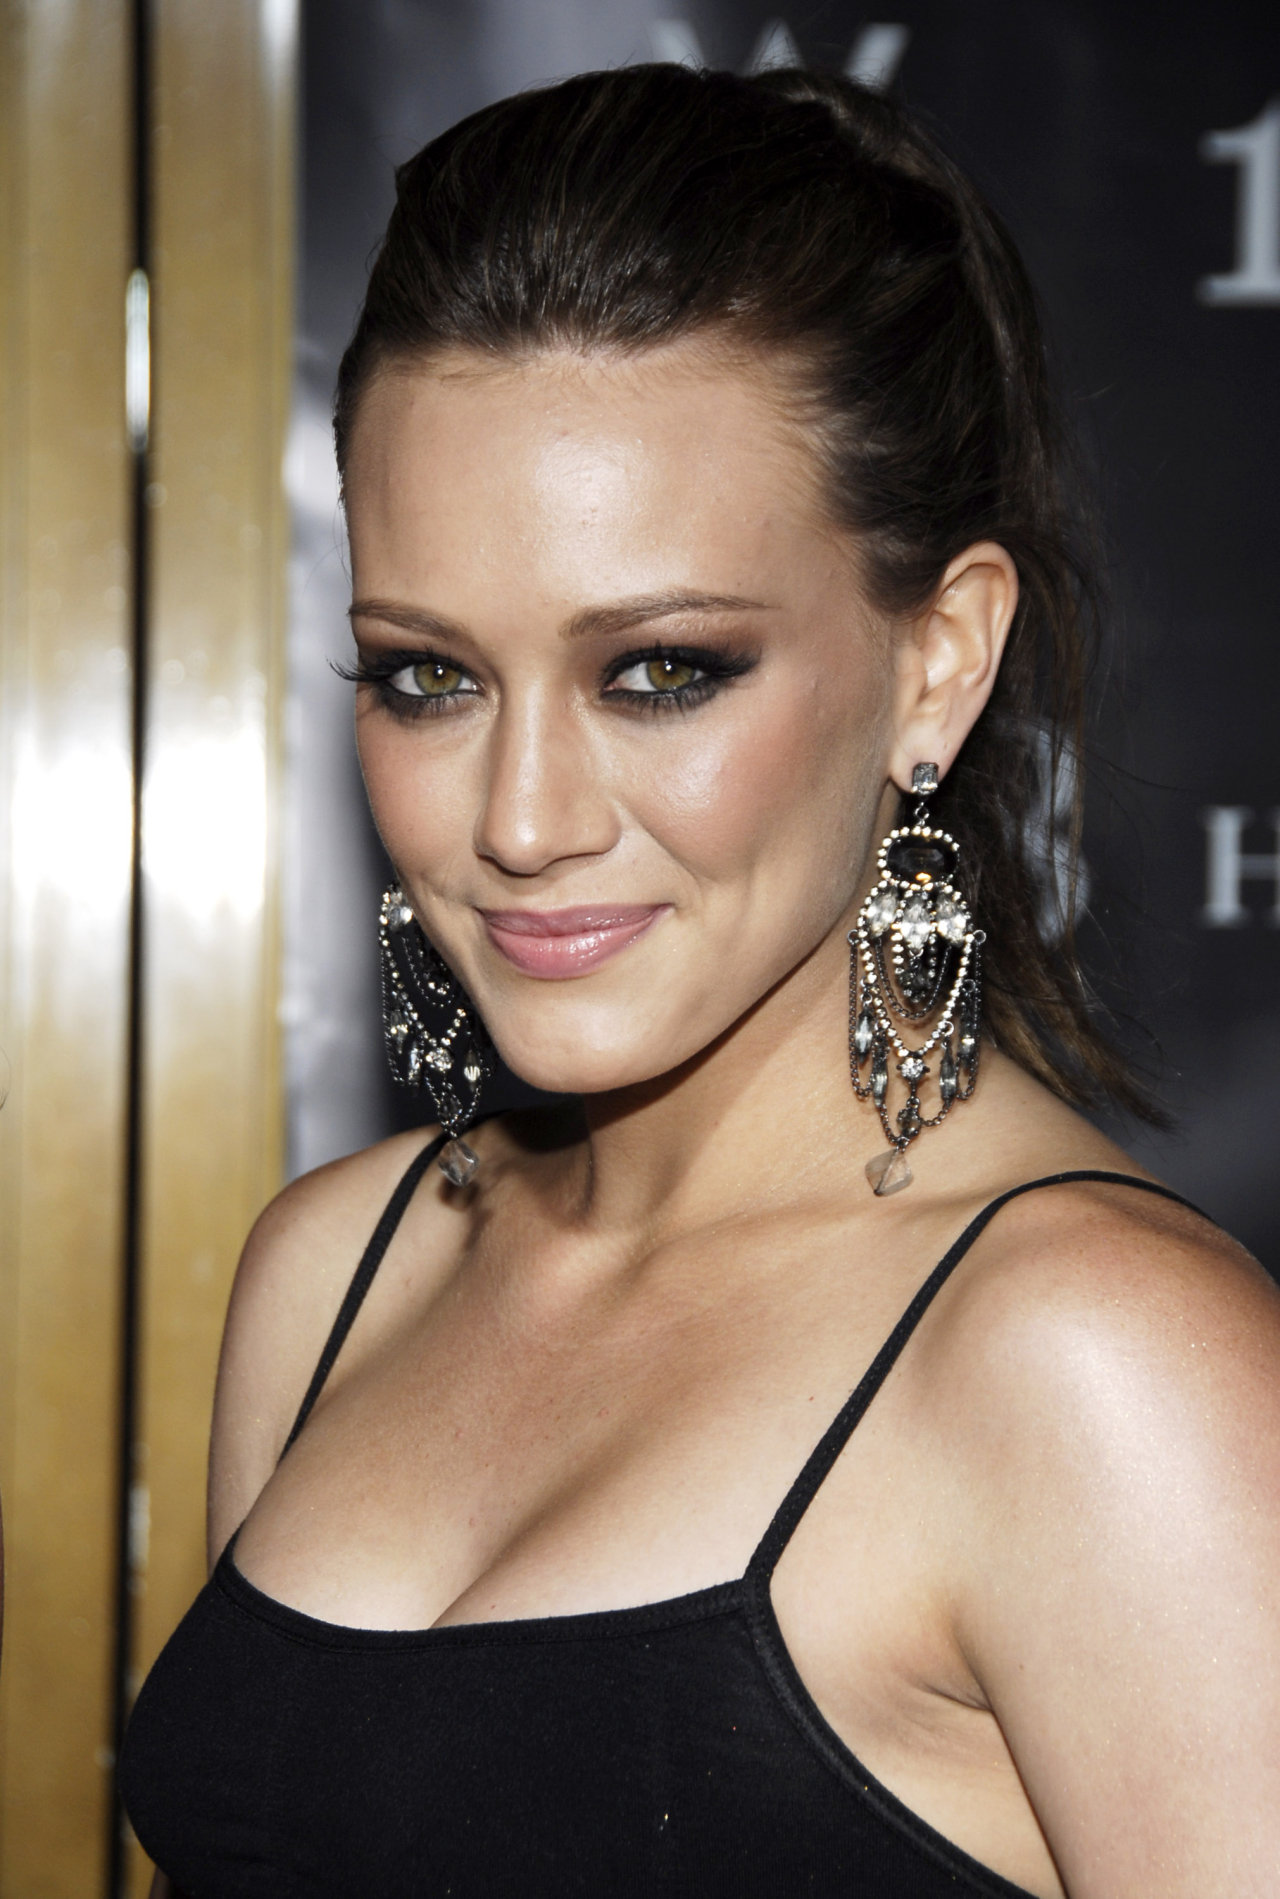 leaked photos 66939 Best celebrity Hilary Duff leaked wallpapers